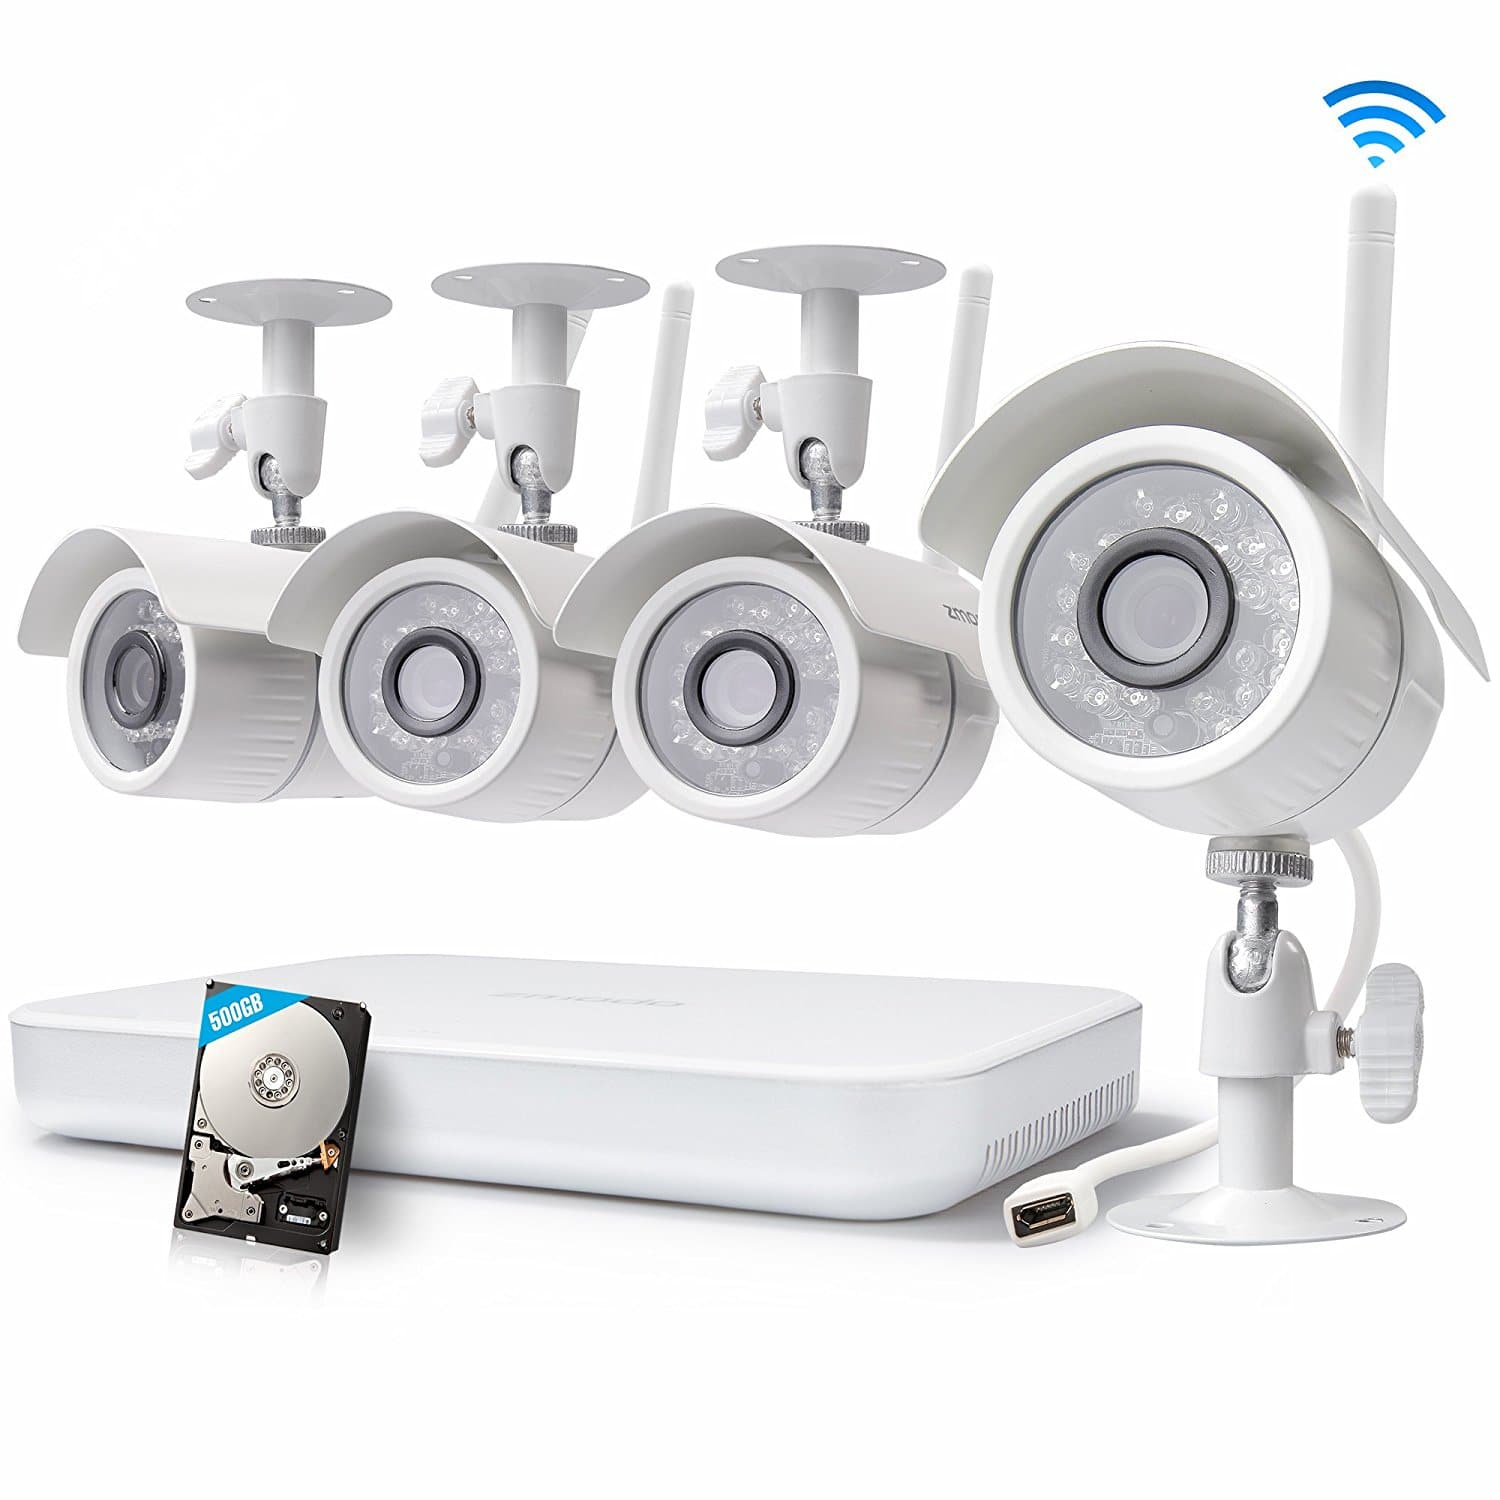 Cyber Monday Flash Sale!  Zmodo 8CH Wireles Security Camera System - 1080P HDMI NVR with 500GB Hard Drive, 4 x 720P HD Indoor/Outdoor Wireles Cameras Night Vision - @Amazon $149.99